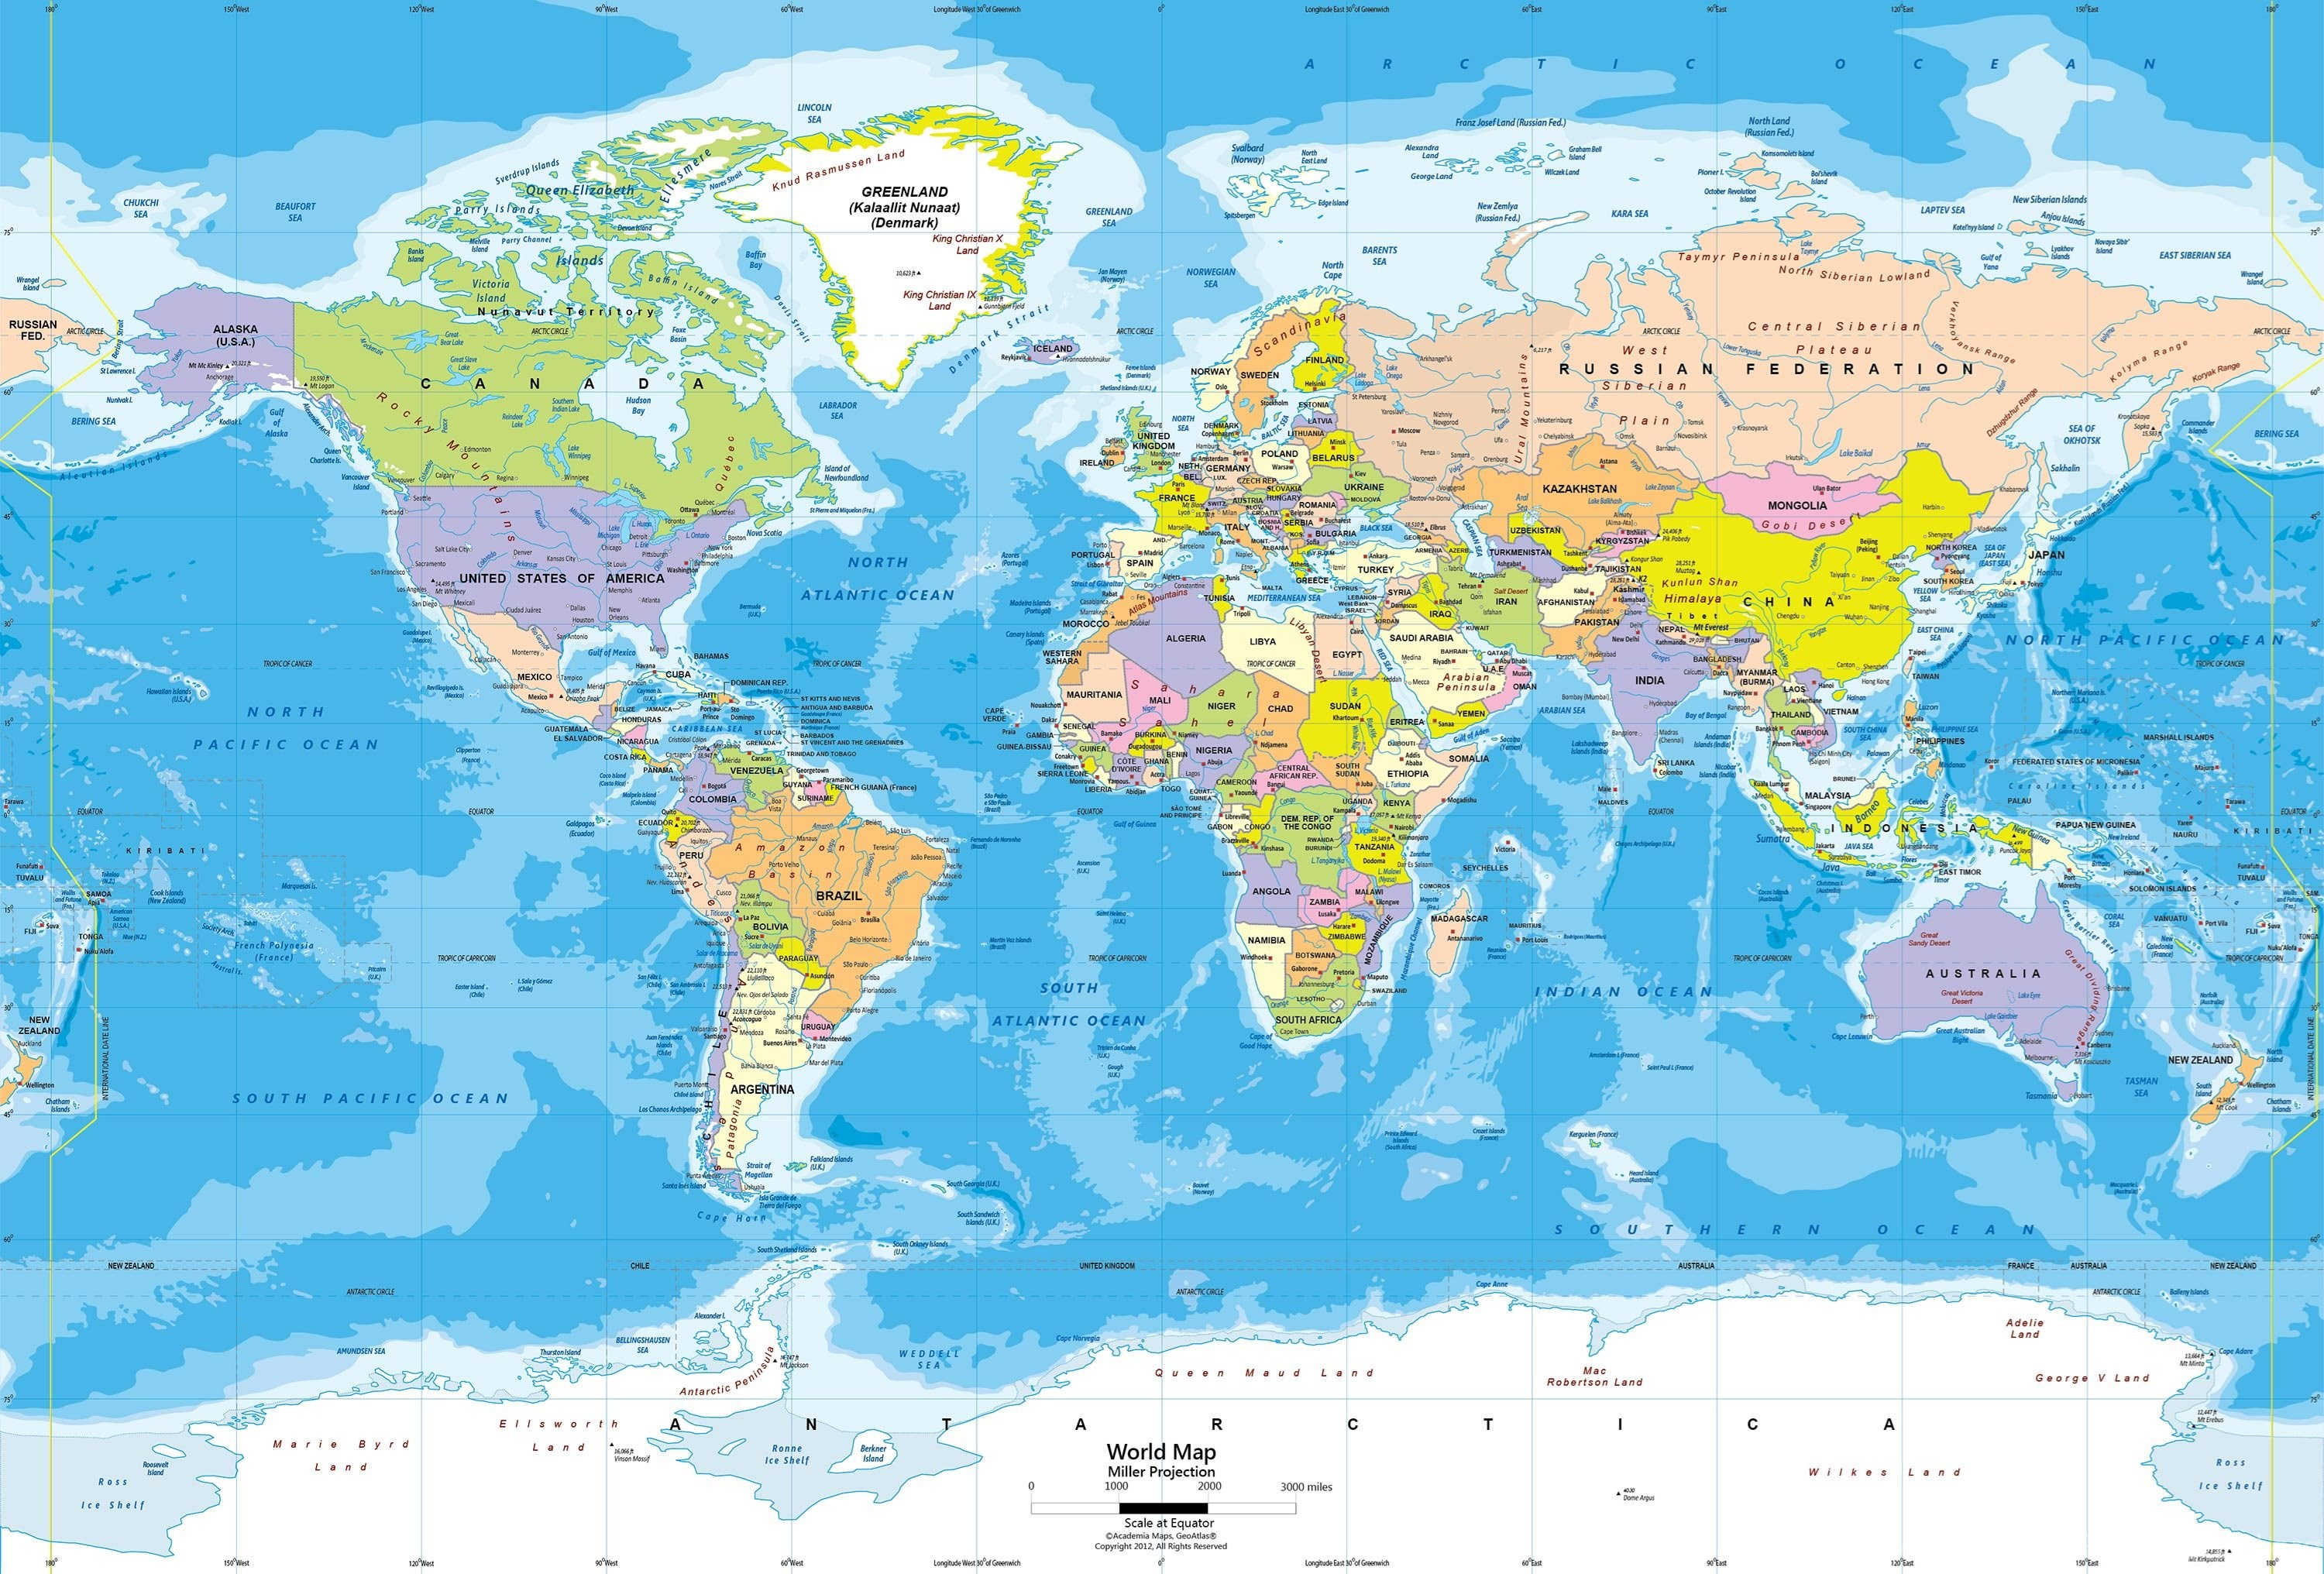 World political map wall mural miller projection desktop background 3000x2032 gumiabroncs Choice Image